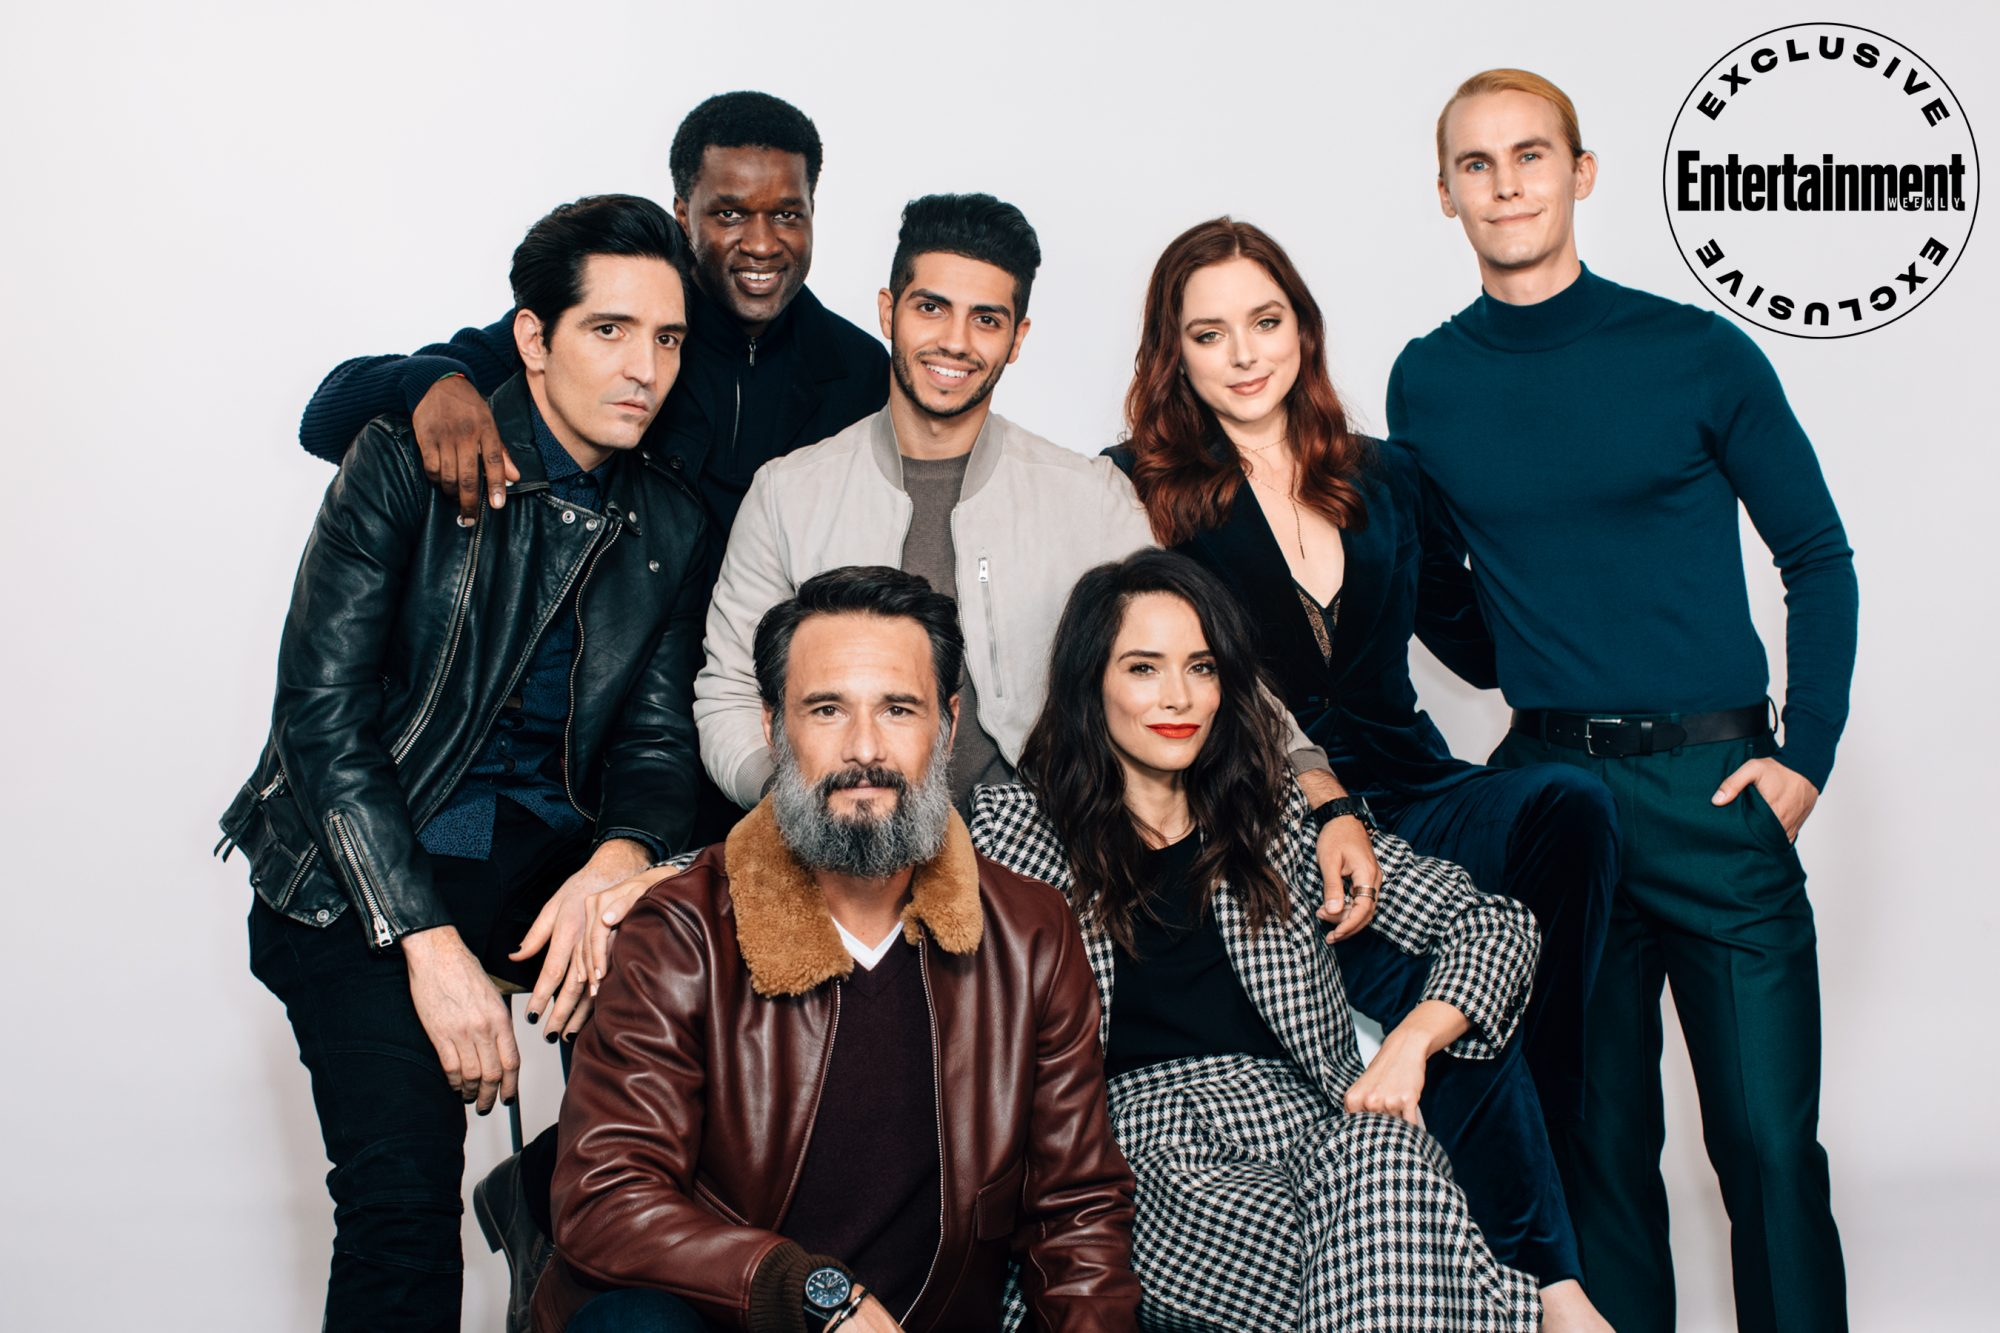 David Dastmalchian, Gilbert Owuor, Rodrigo Santoro, Mena Massoud, Abigail Spencer, Madison Davenport, and Rhys Wakefield from Reprisal